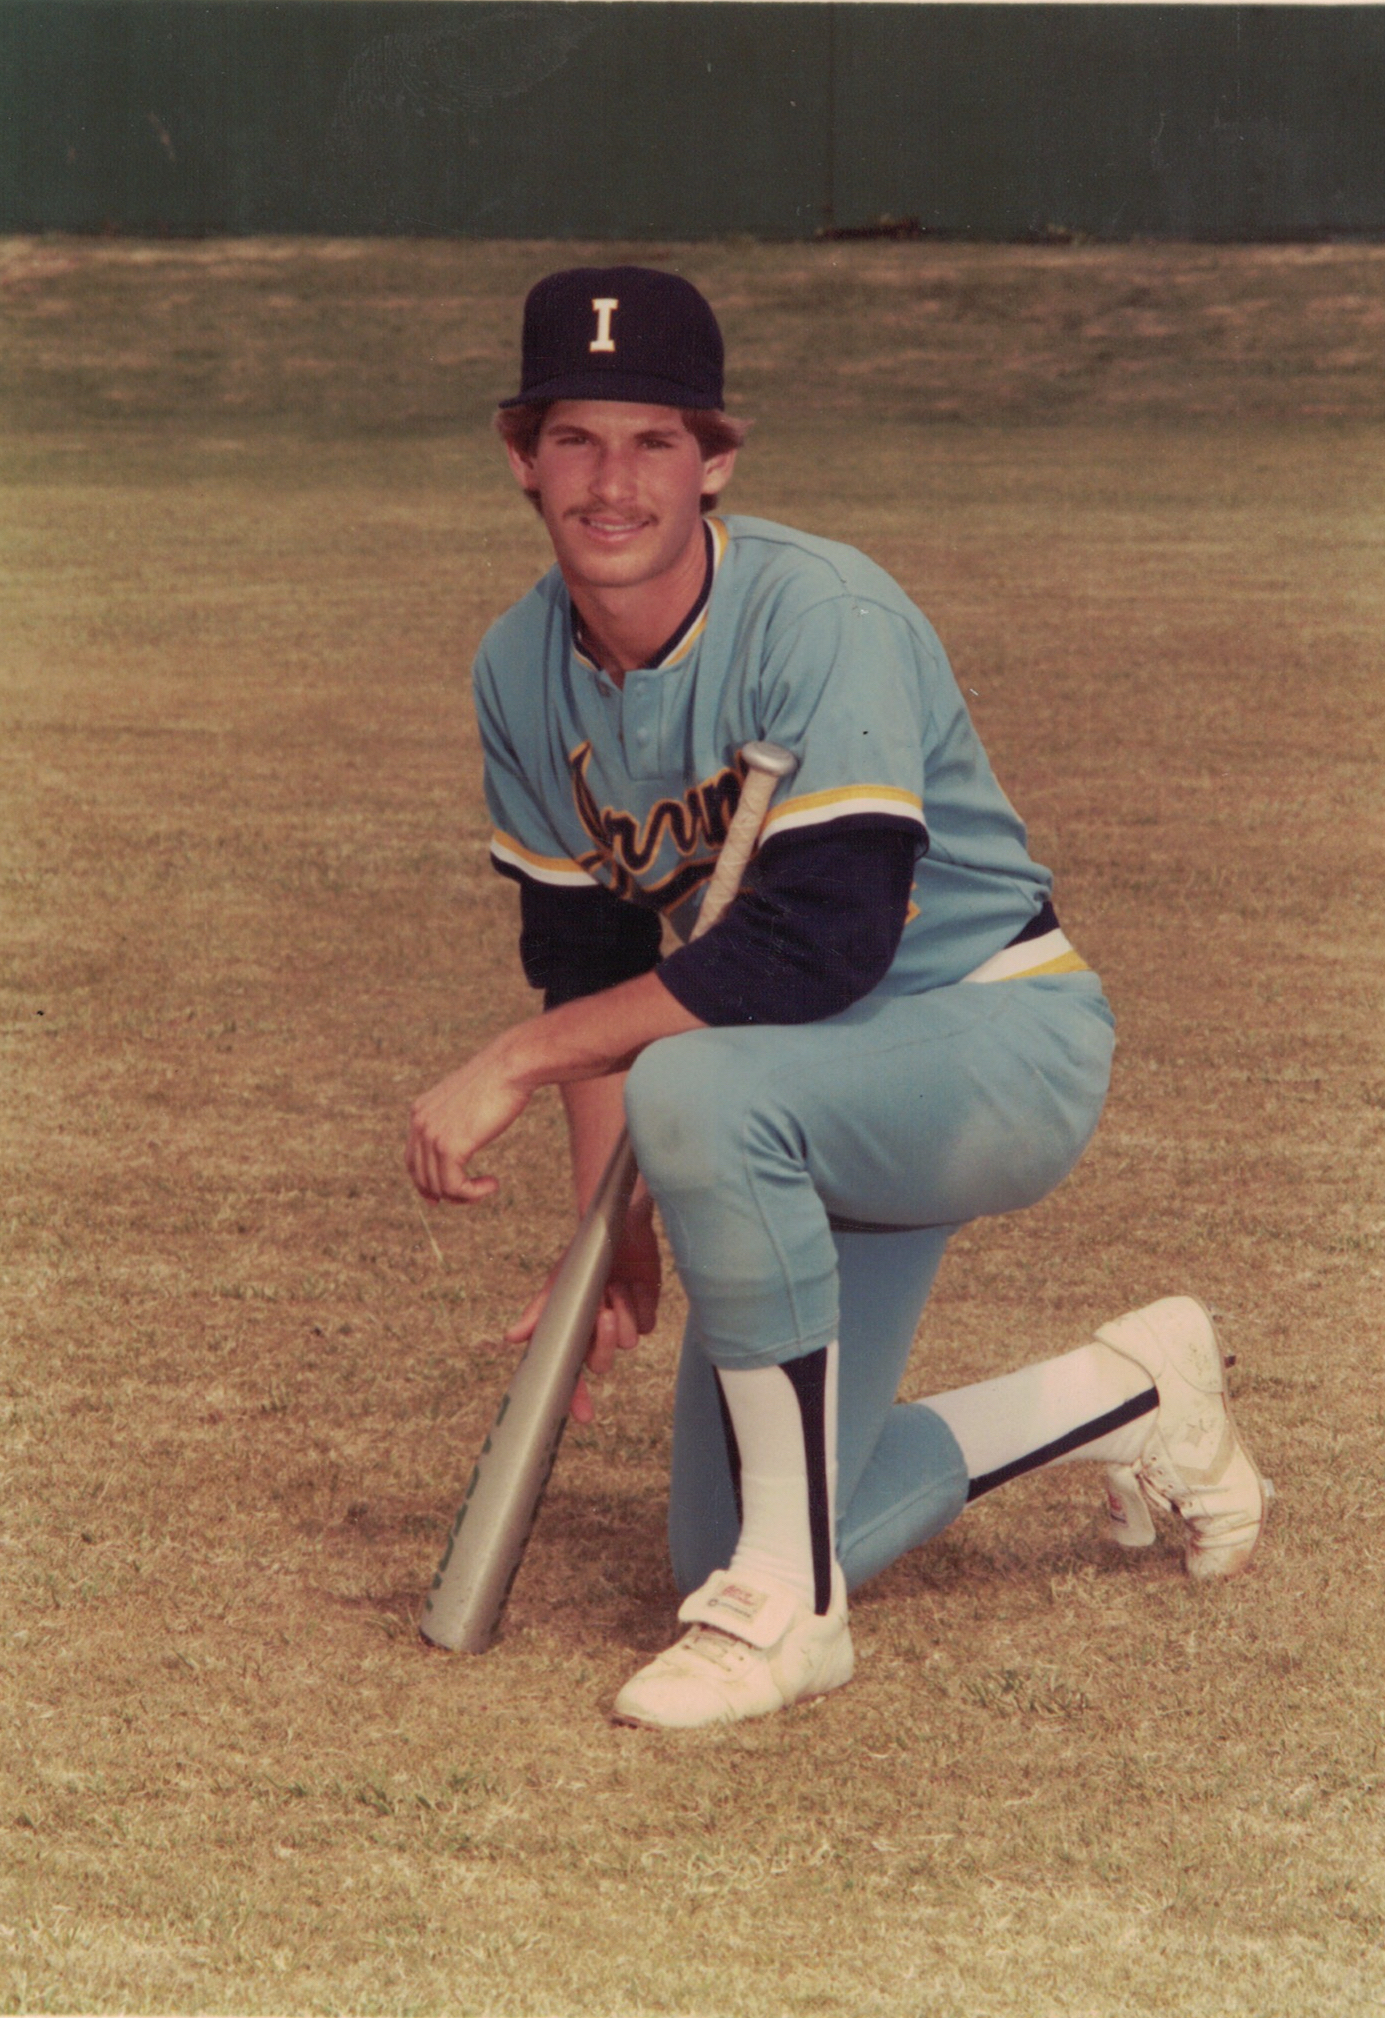 Mike's college days playing baseball for uc irvine. Picture from 1983.